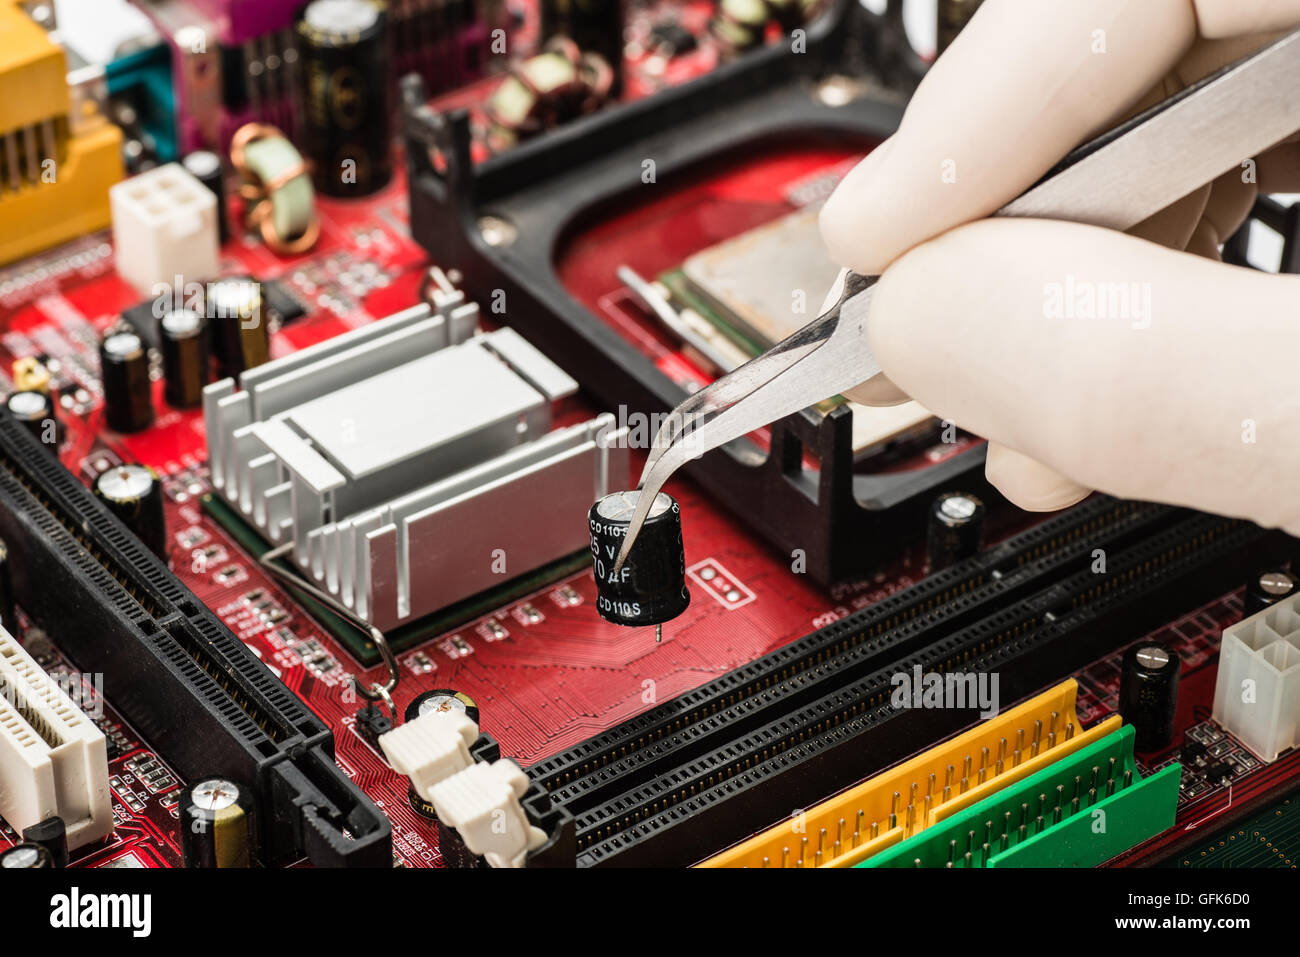 working on the computer hardware - Stock Image